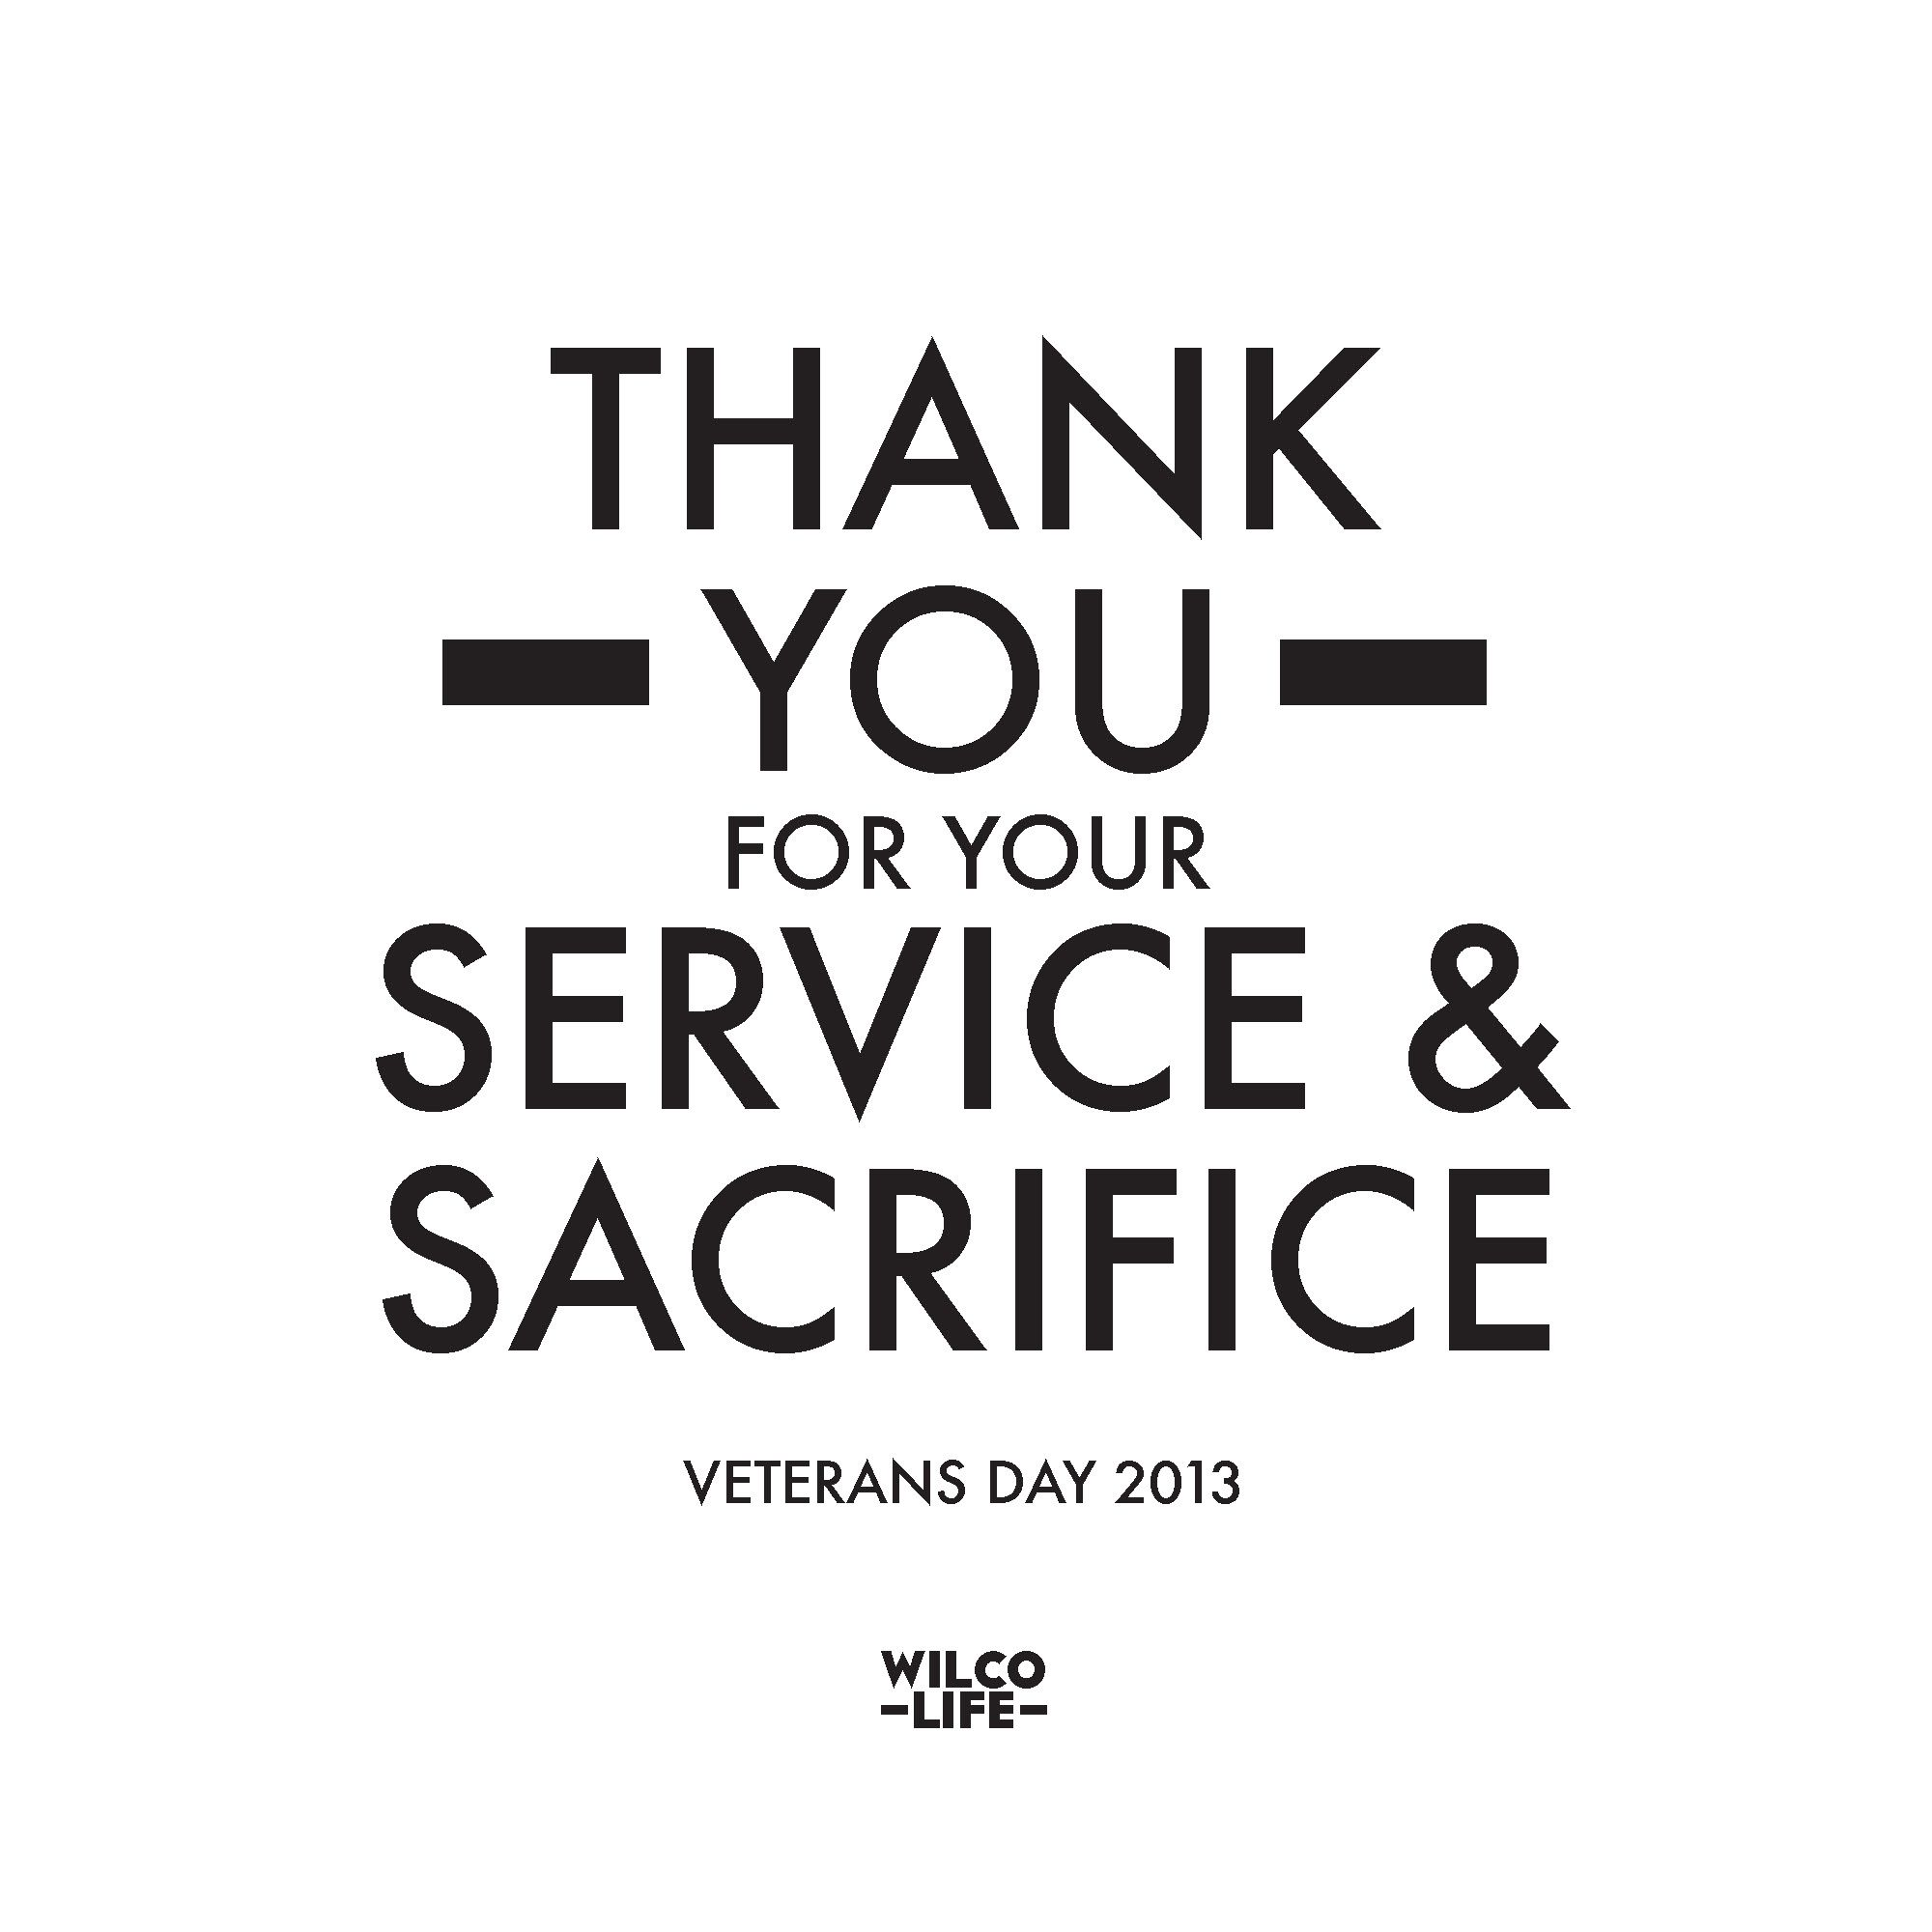 Thank you for your service & sacrifice! Veterans Day 2013